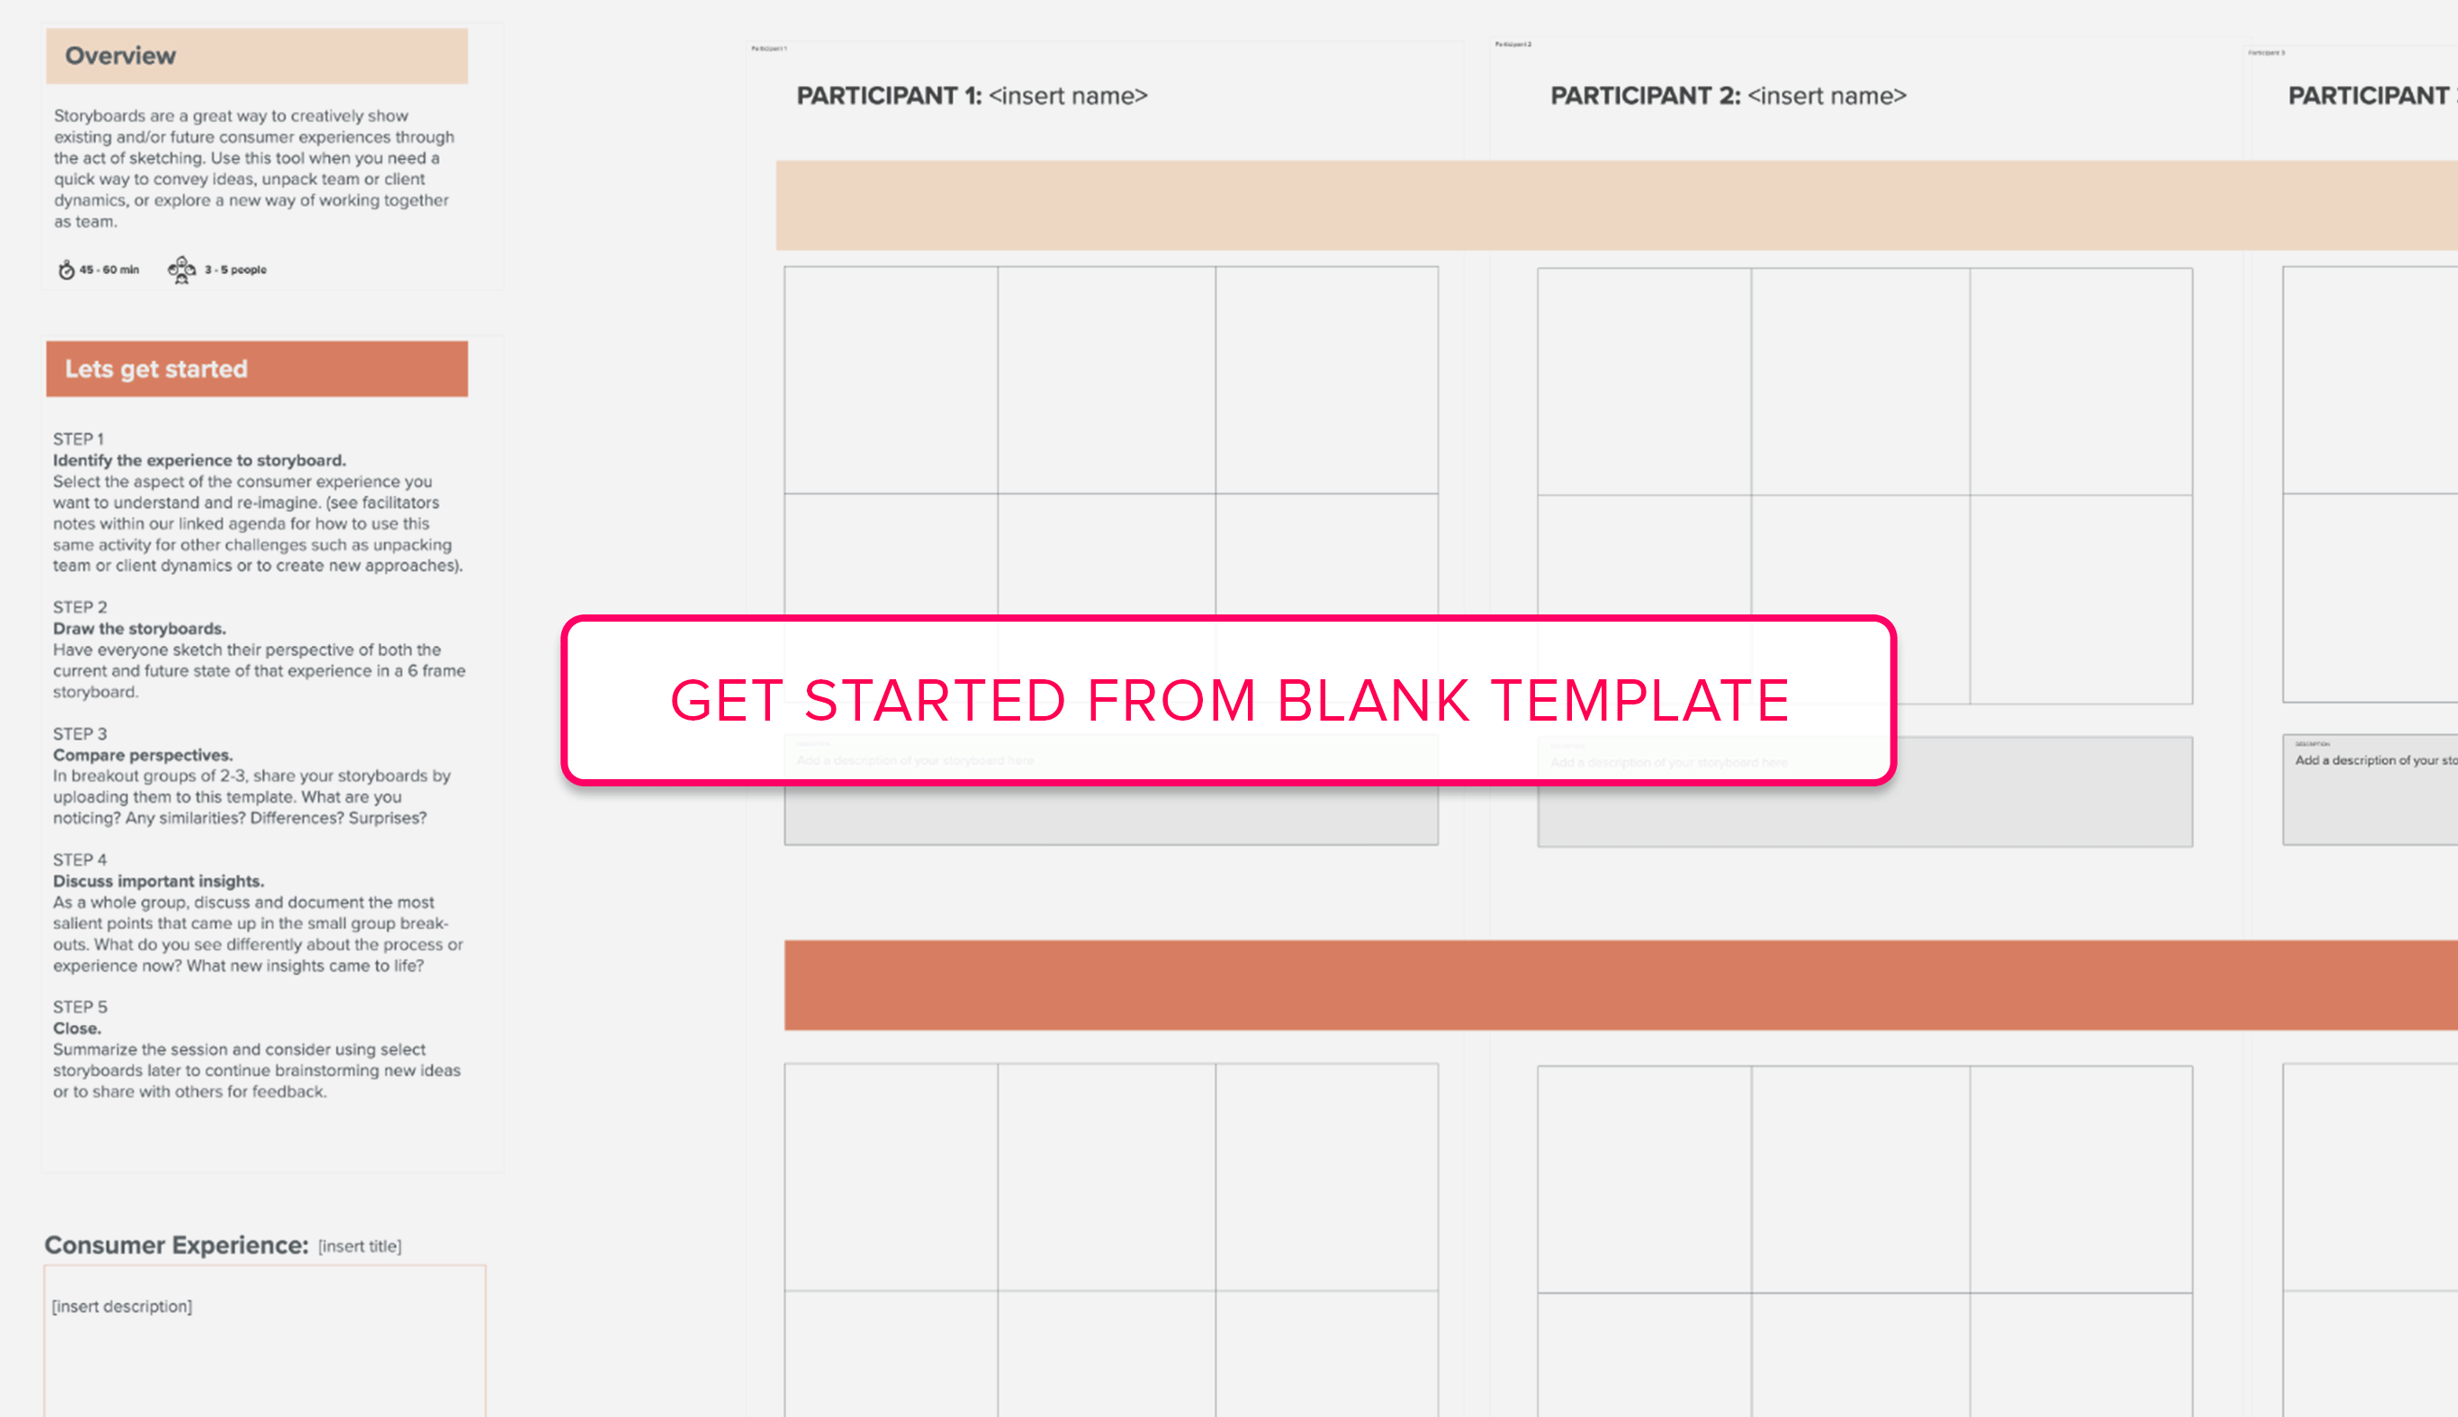 Get started from Storyboarding blank template